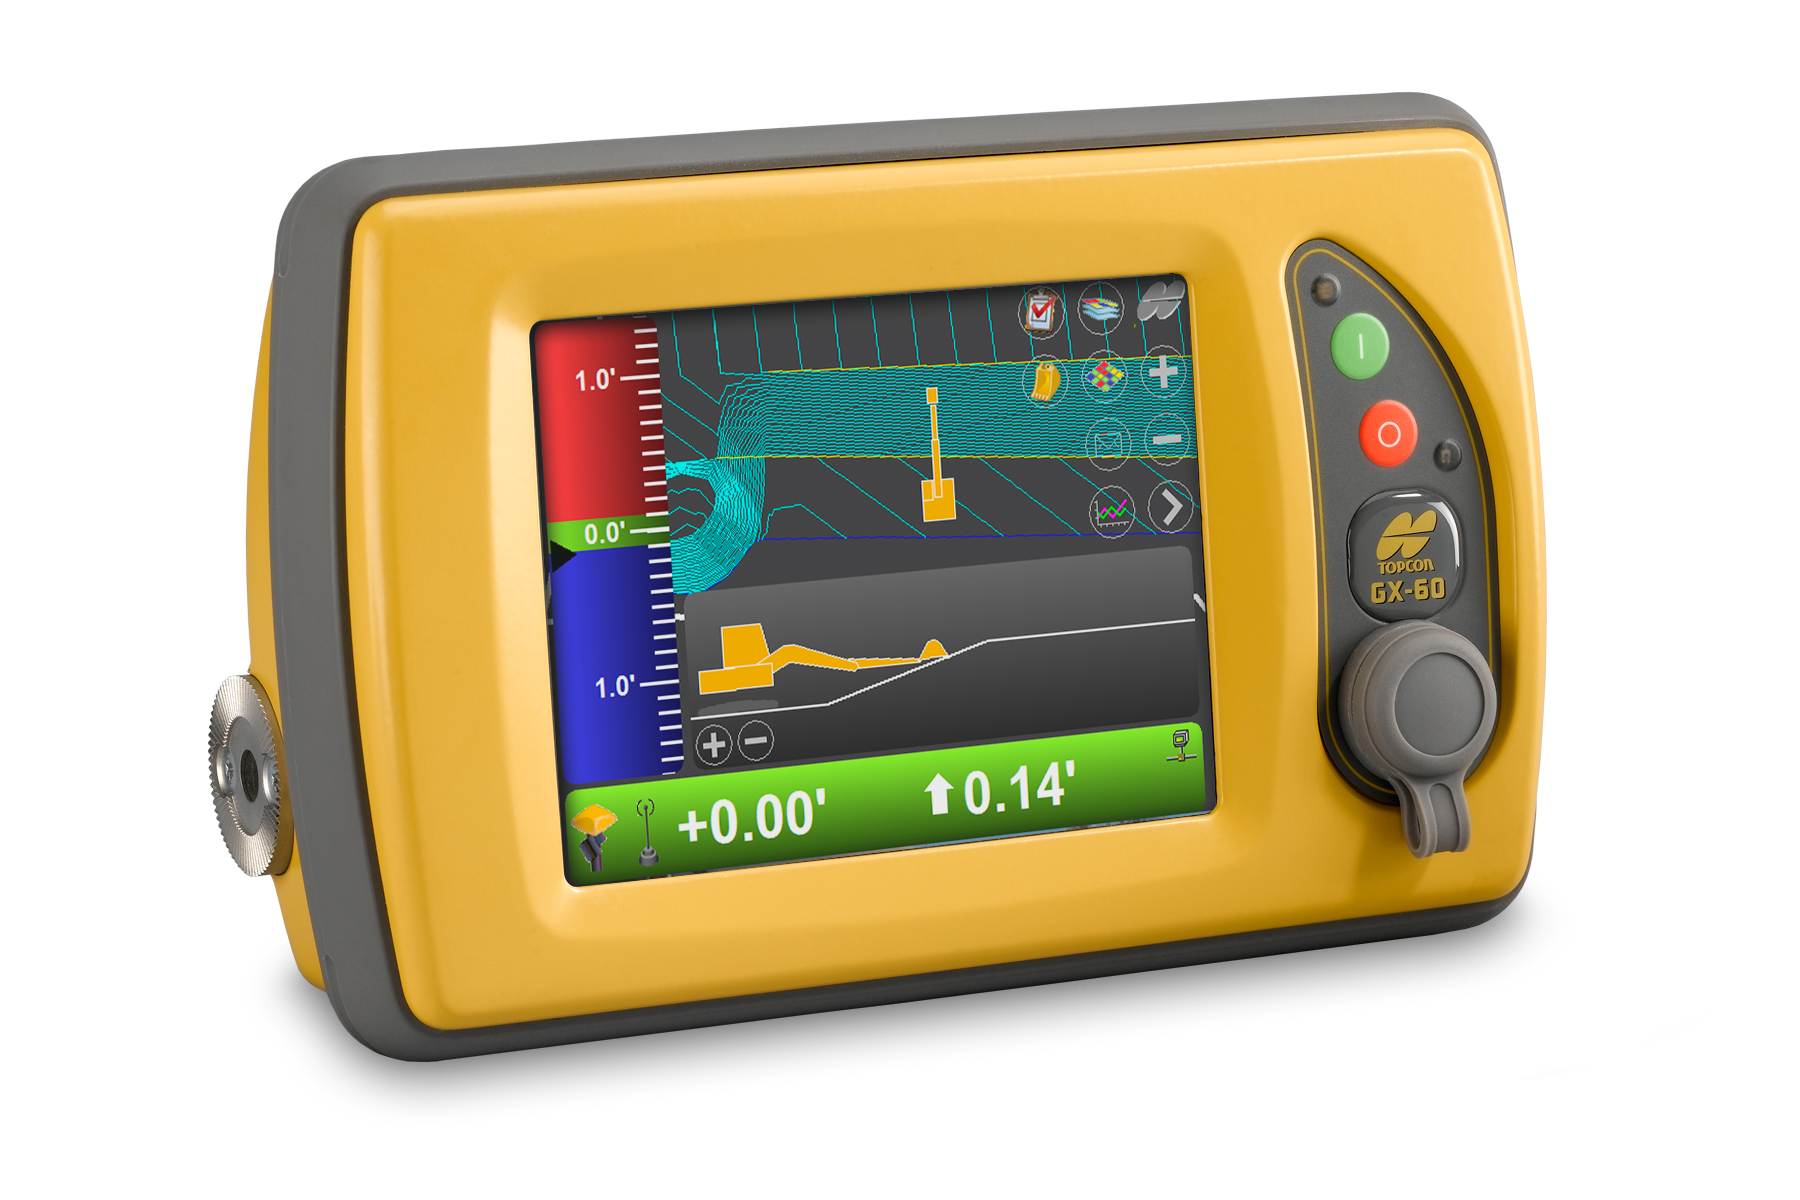 Topcon X 63i Excavator Indicate System Increases